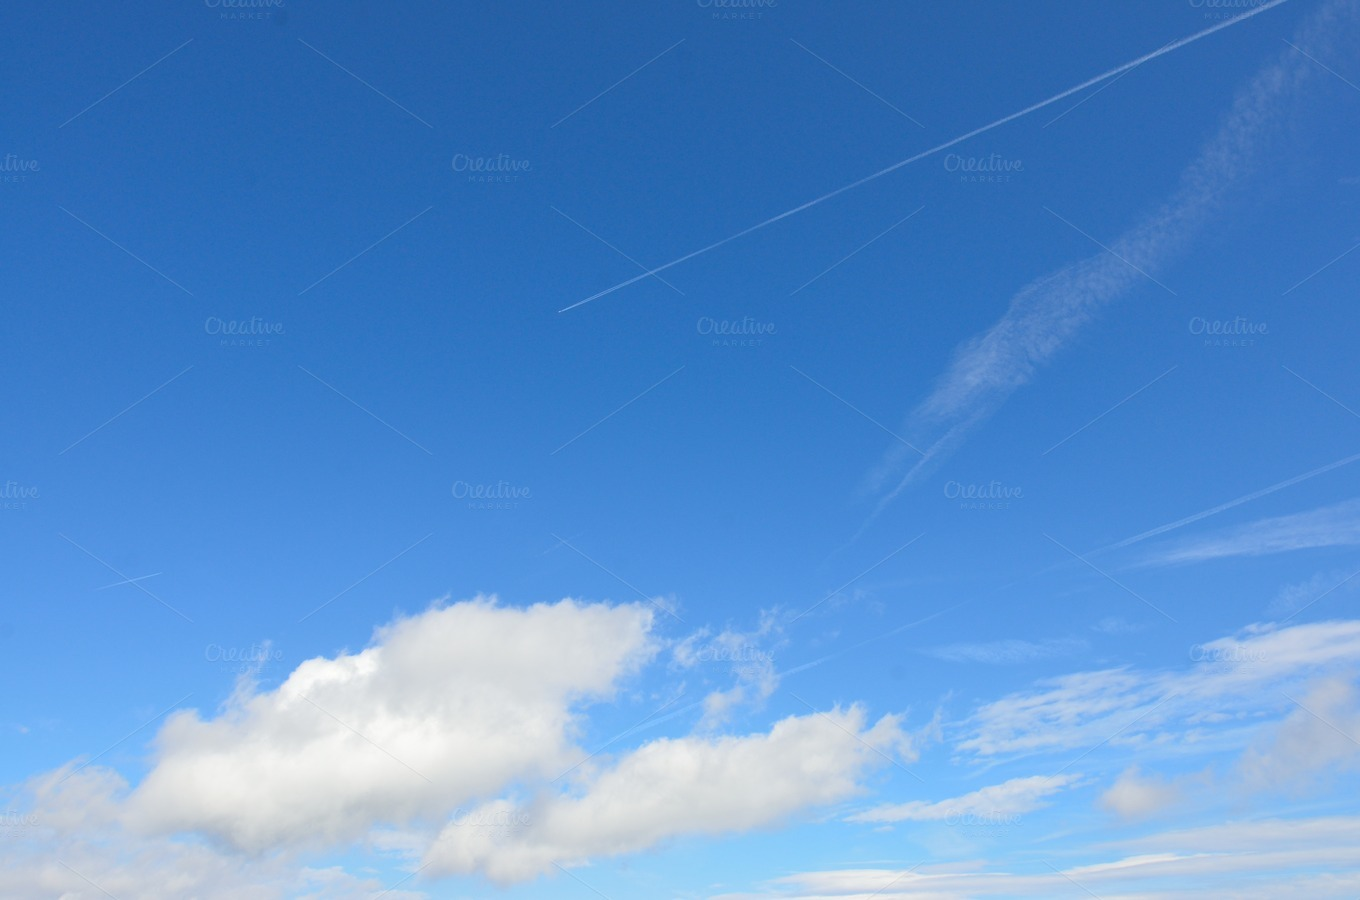 Clear Sky and Airplane with Trails ~ Transportation Photos ...